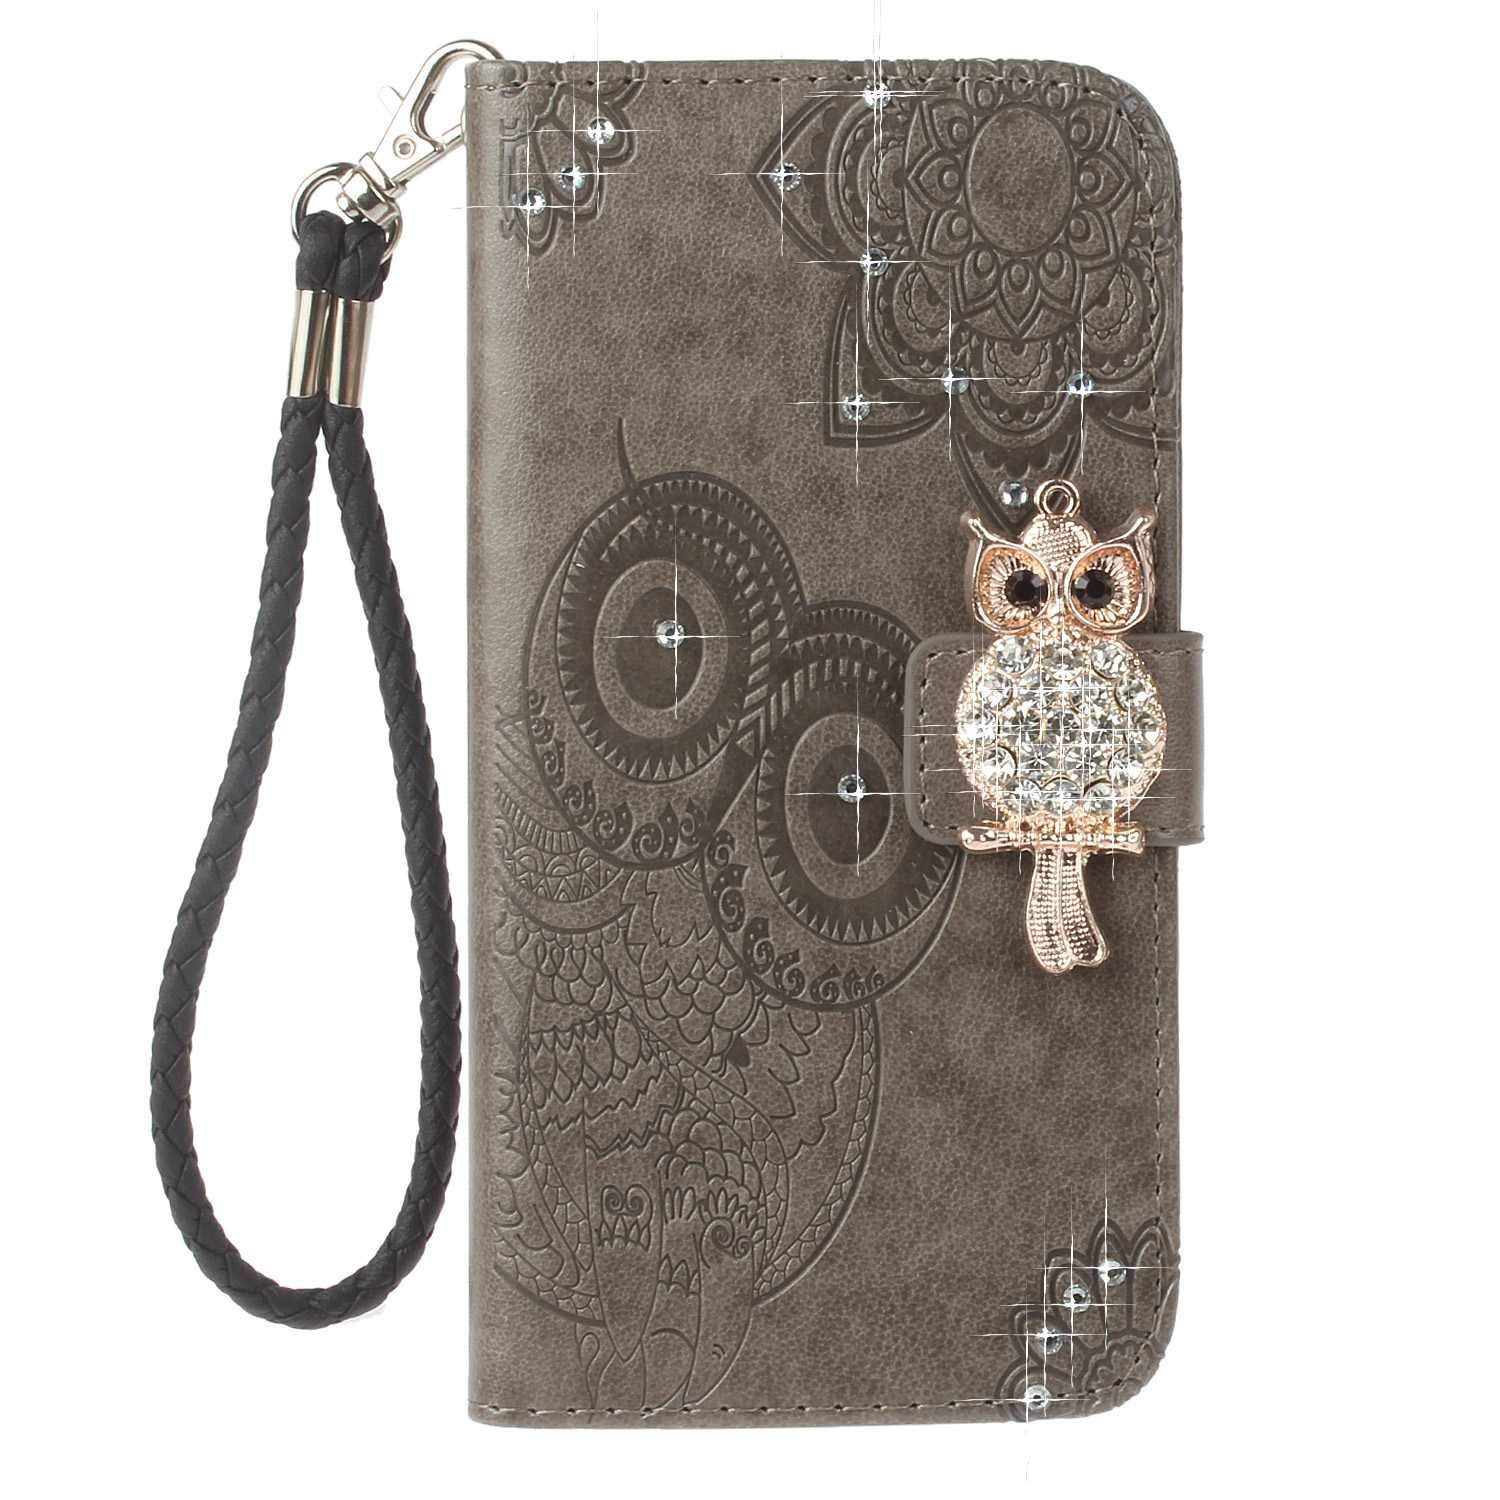 Bear Village OnePlus 5 Case, Leather Case with Wrist Strap and Credit Card Slot, Owl Magnetic Closure Shockproof Cover for OnePlus 5, Gray by Bear Village